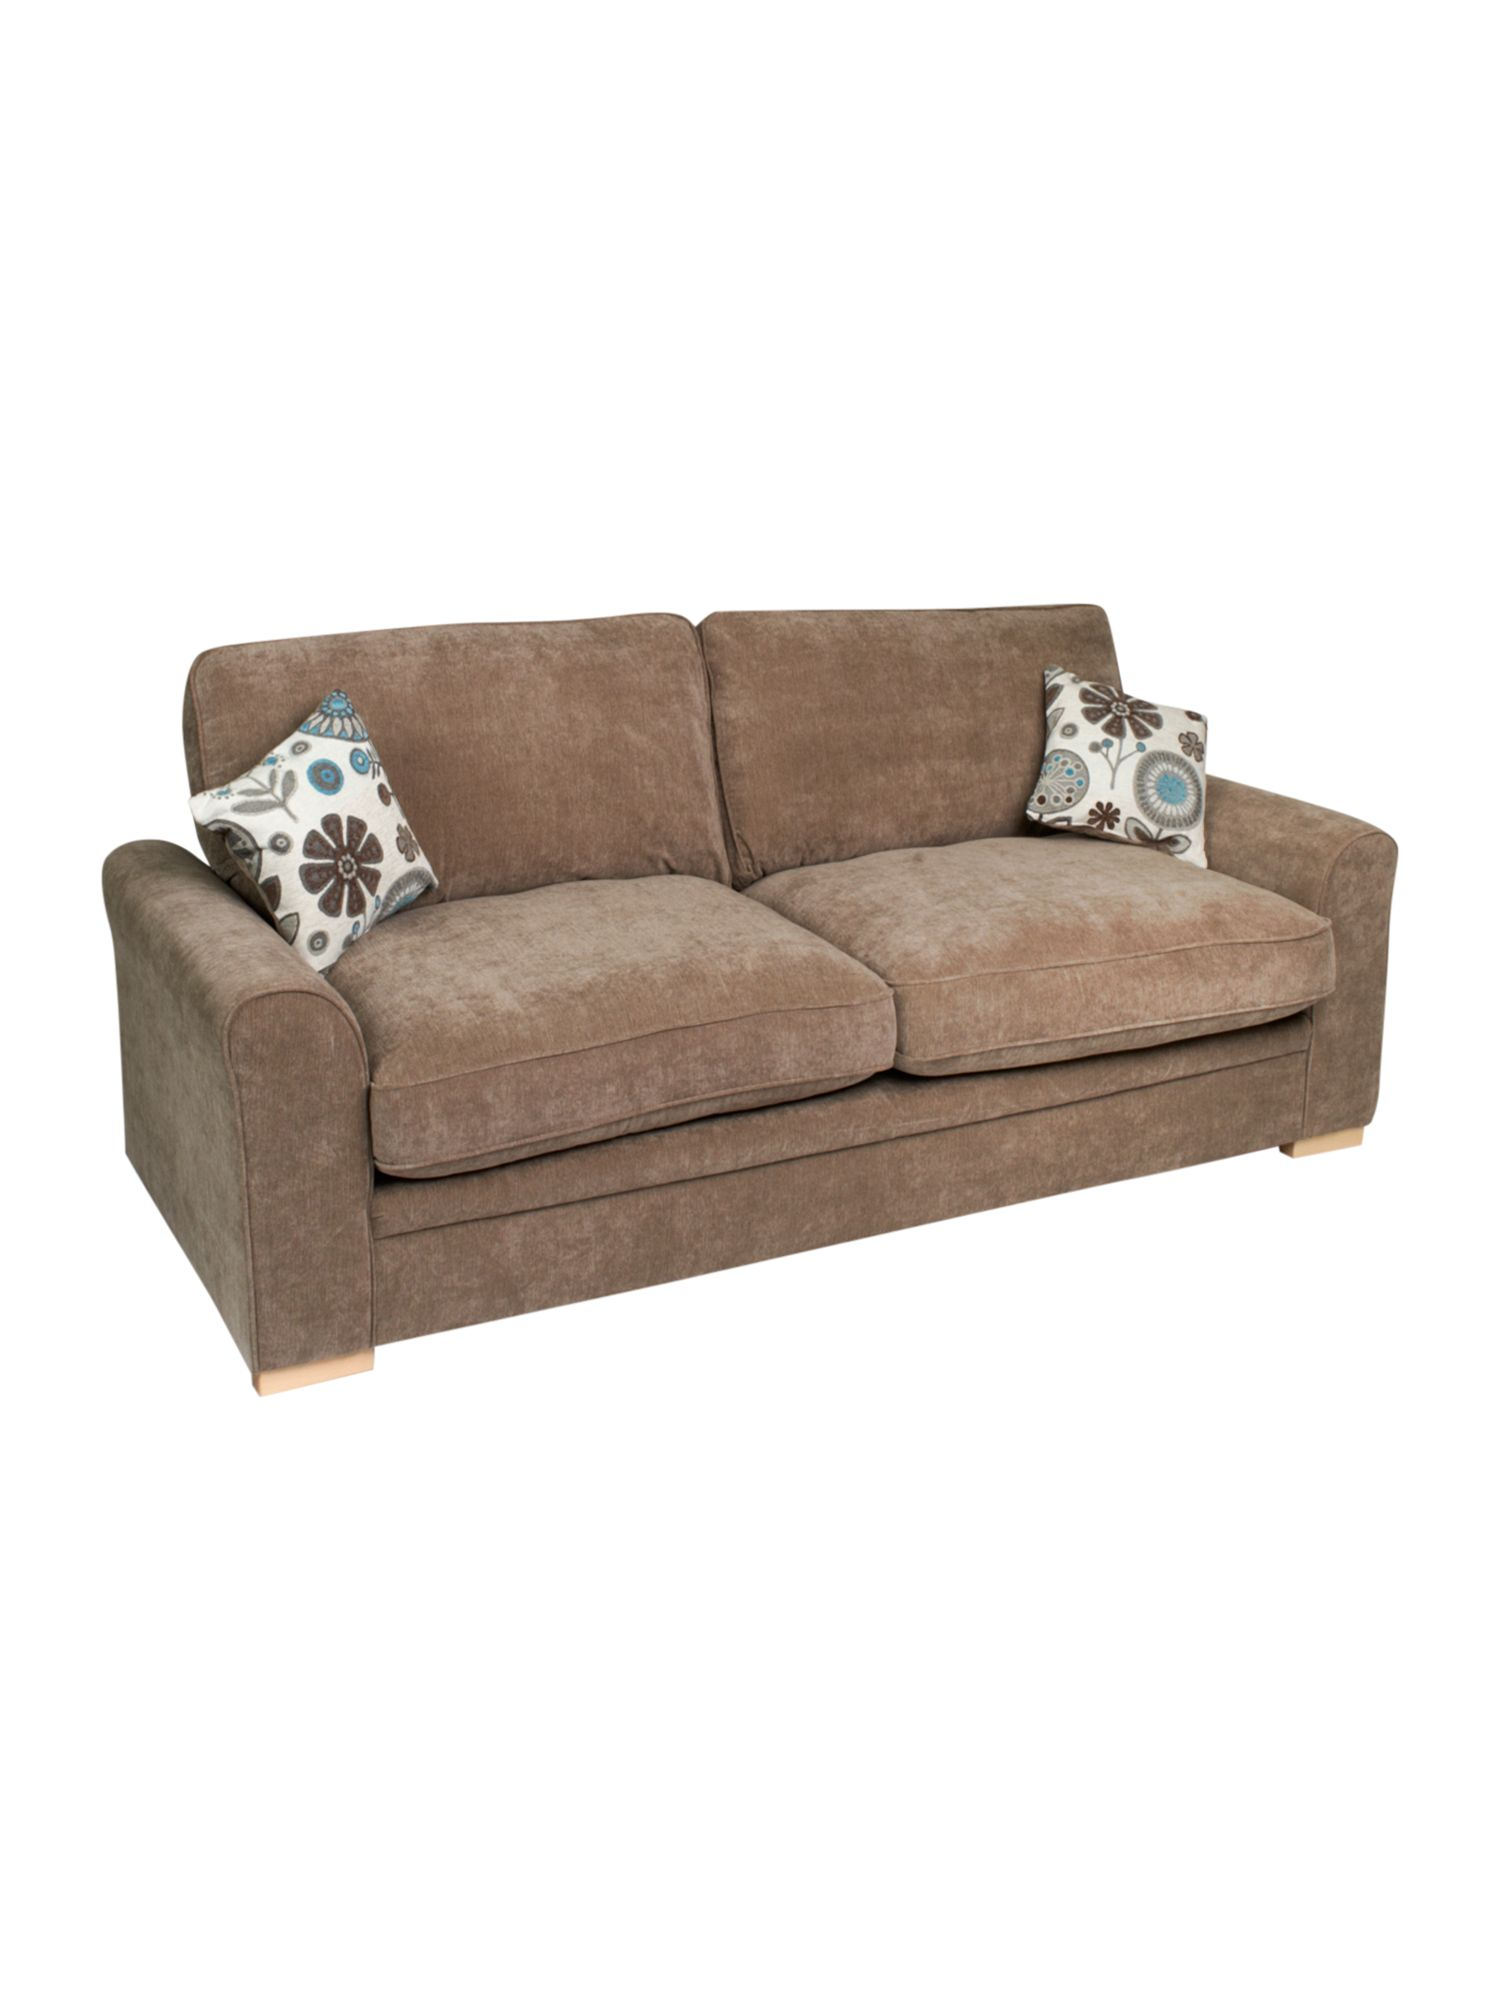 Esher extra large 4 seater sofa